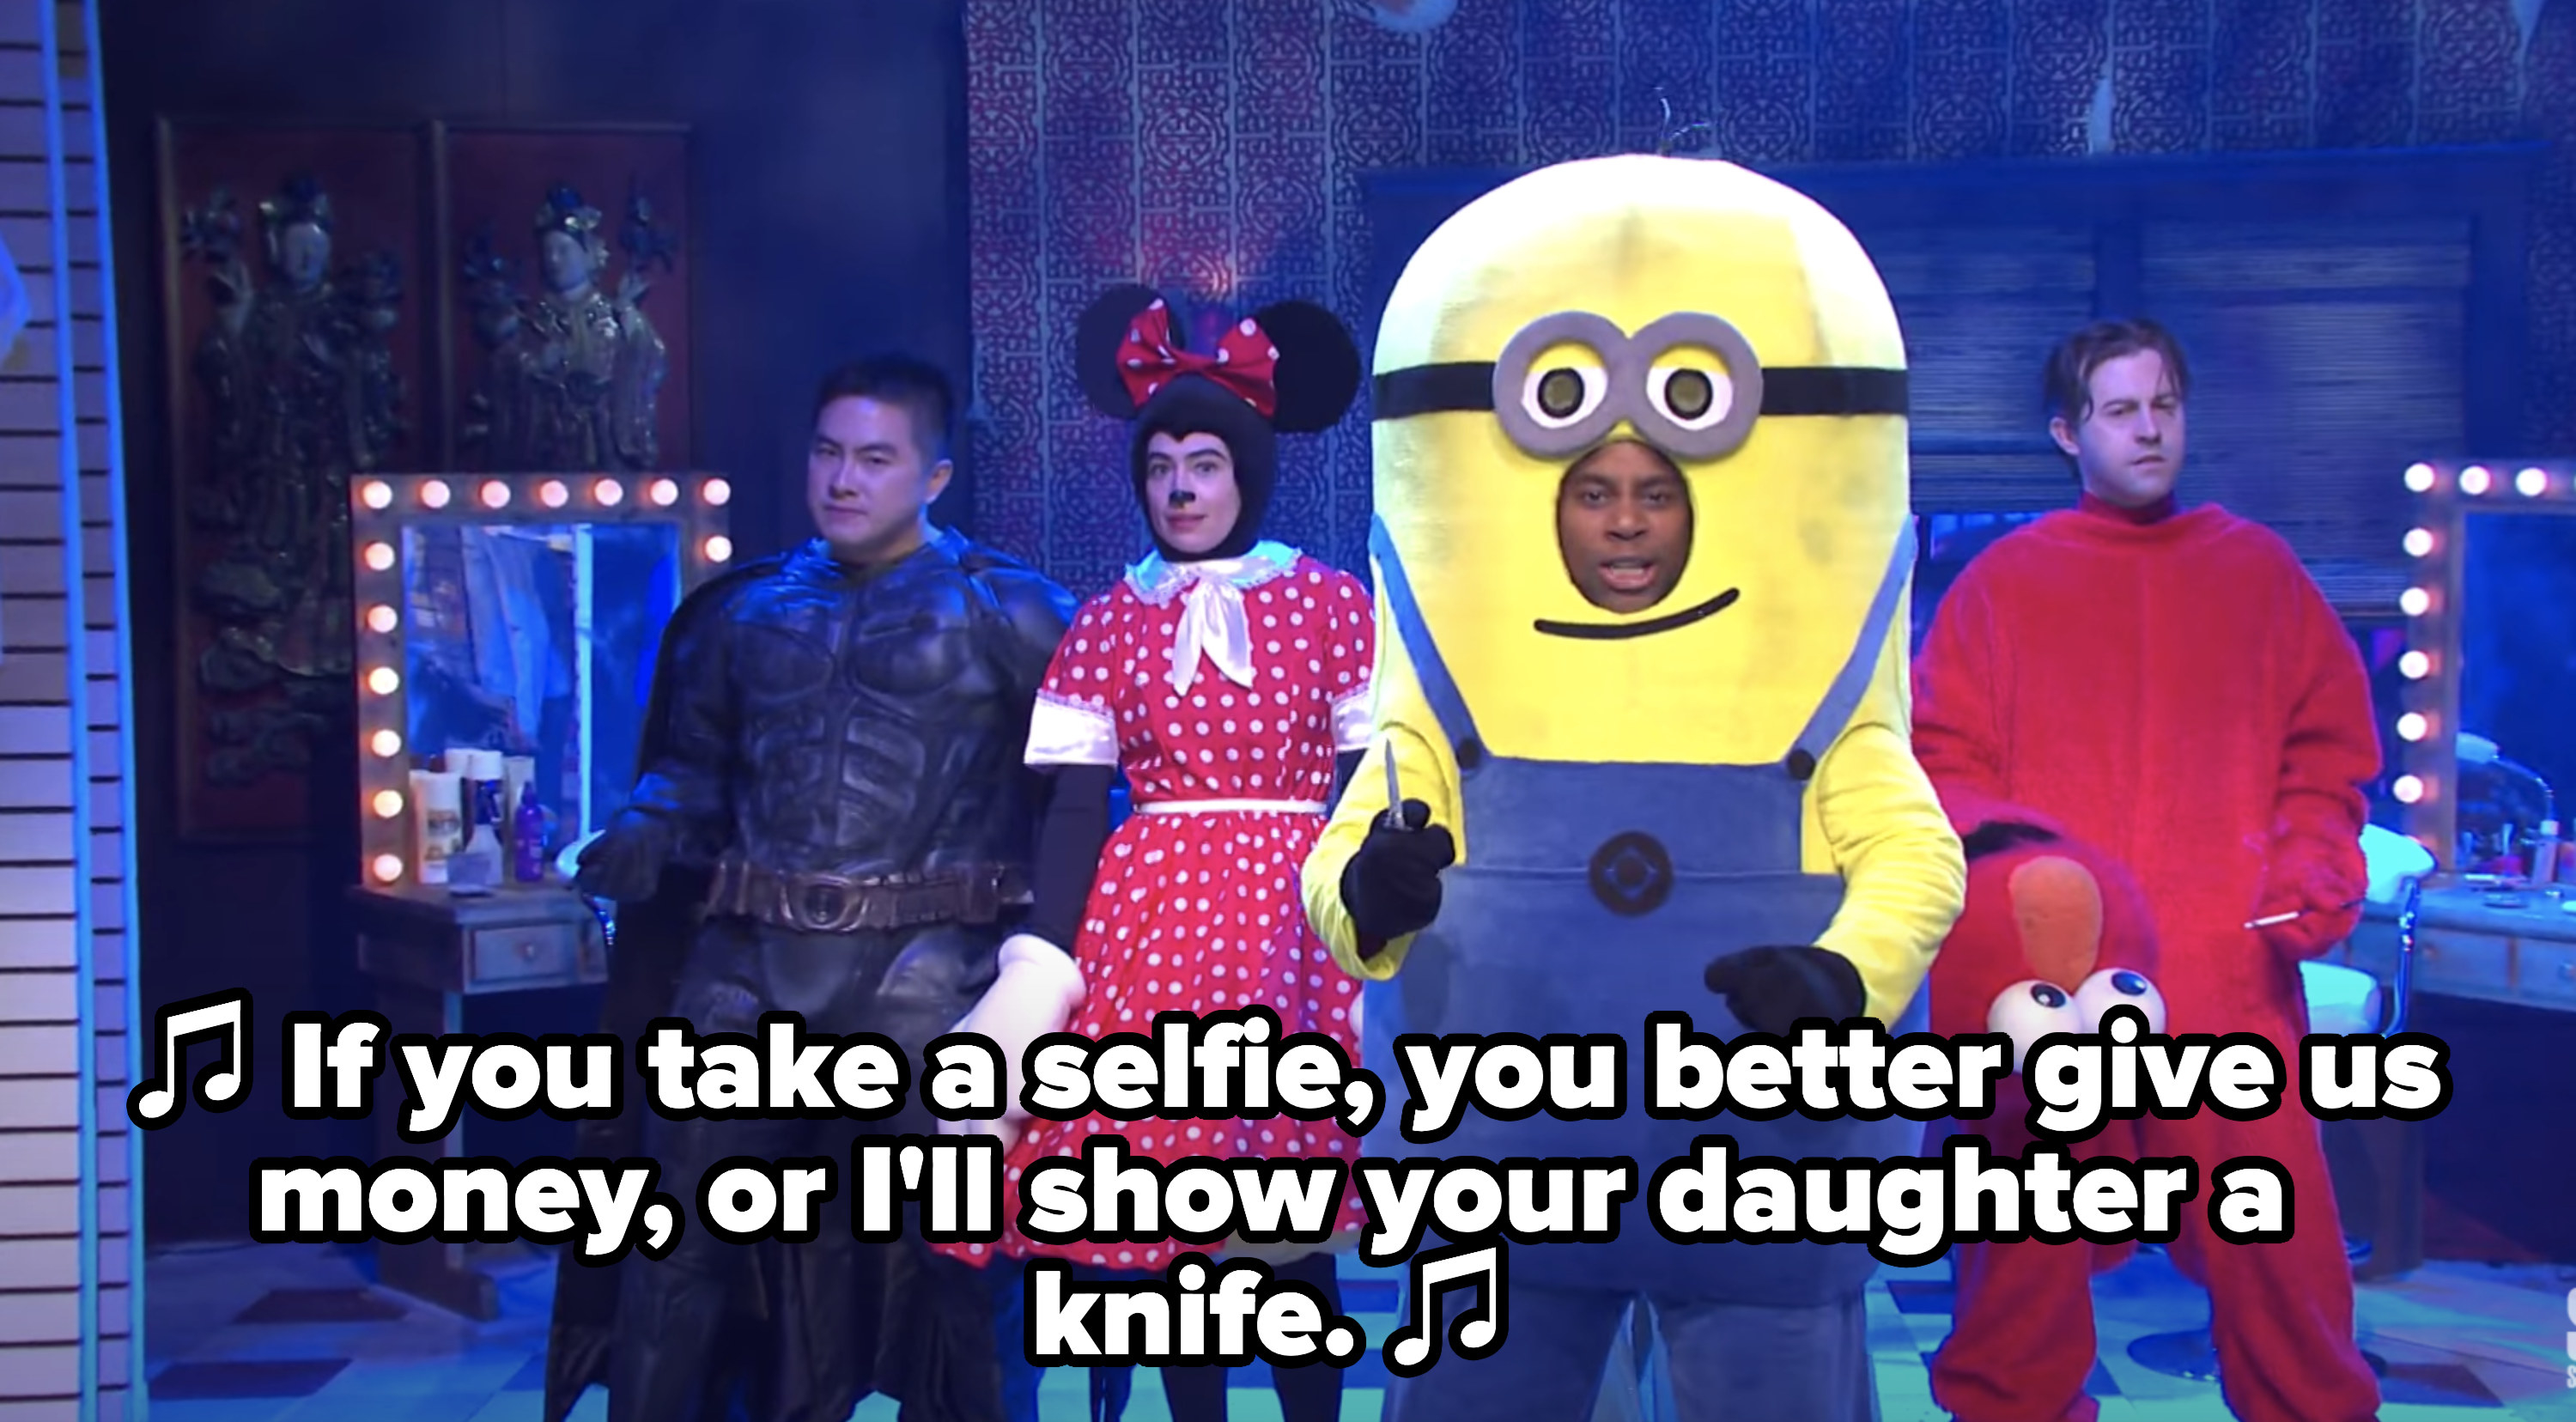 Minion singing that you better pay them if you take a selfie or they'll take out a knife